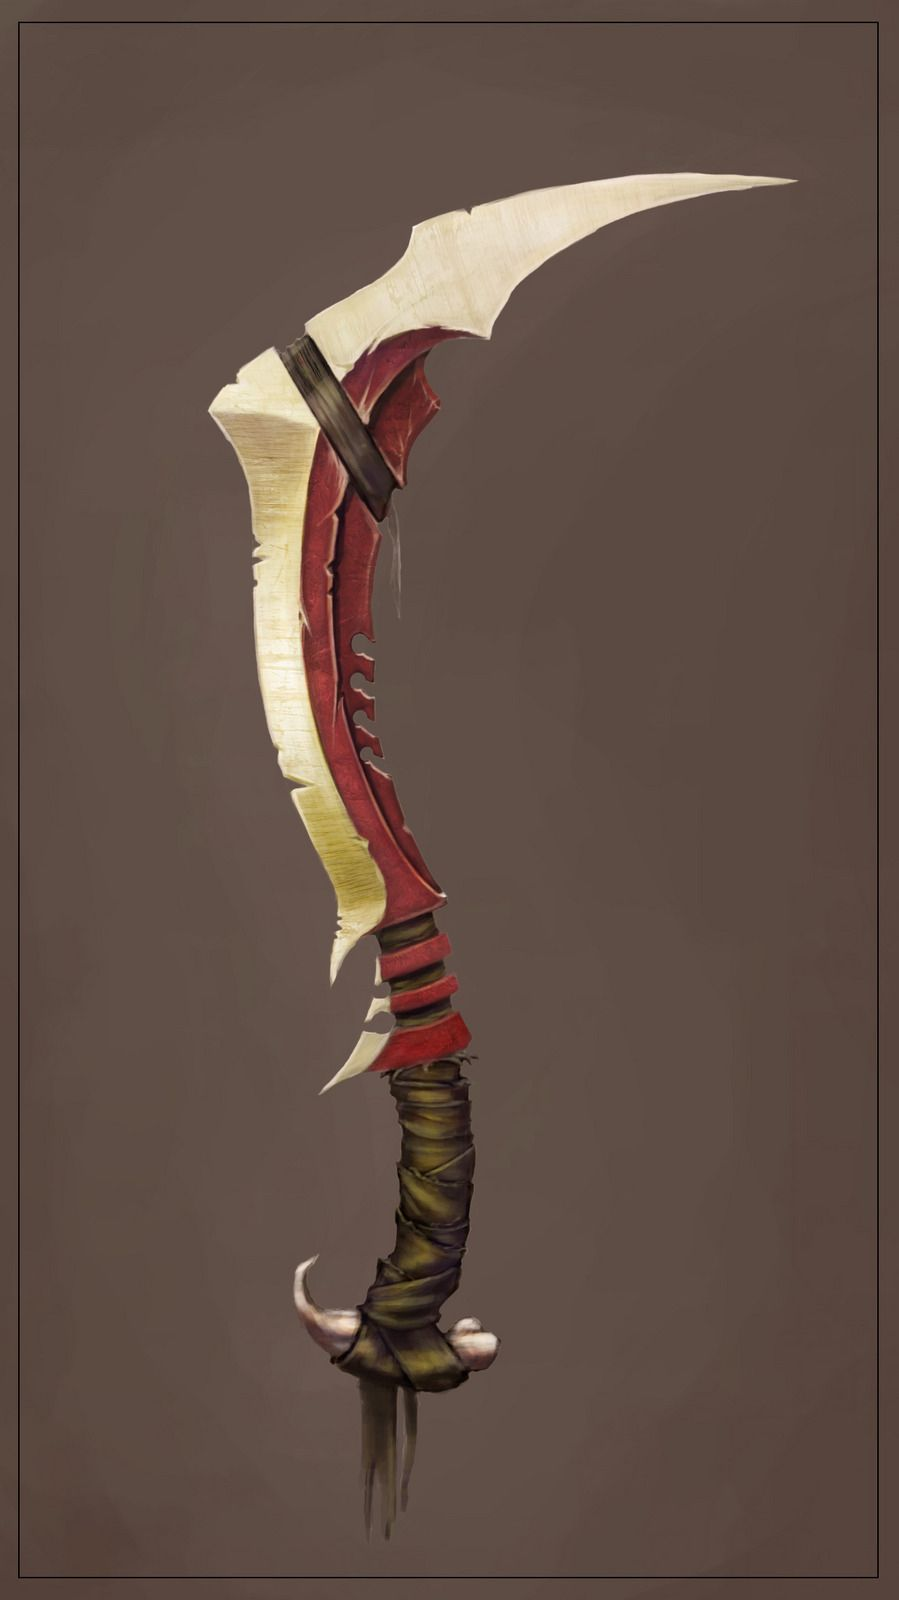 Swords | Weapons, Blades & Armor | Pinterest